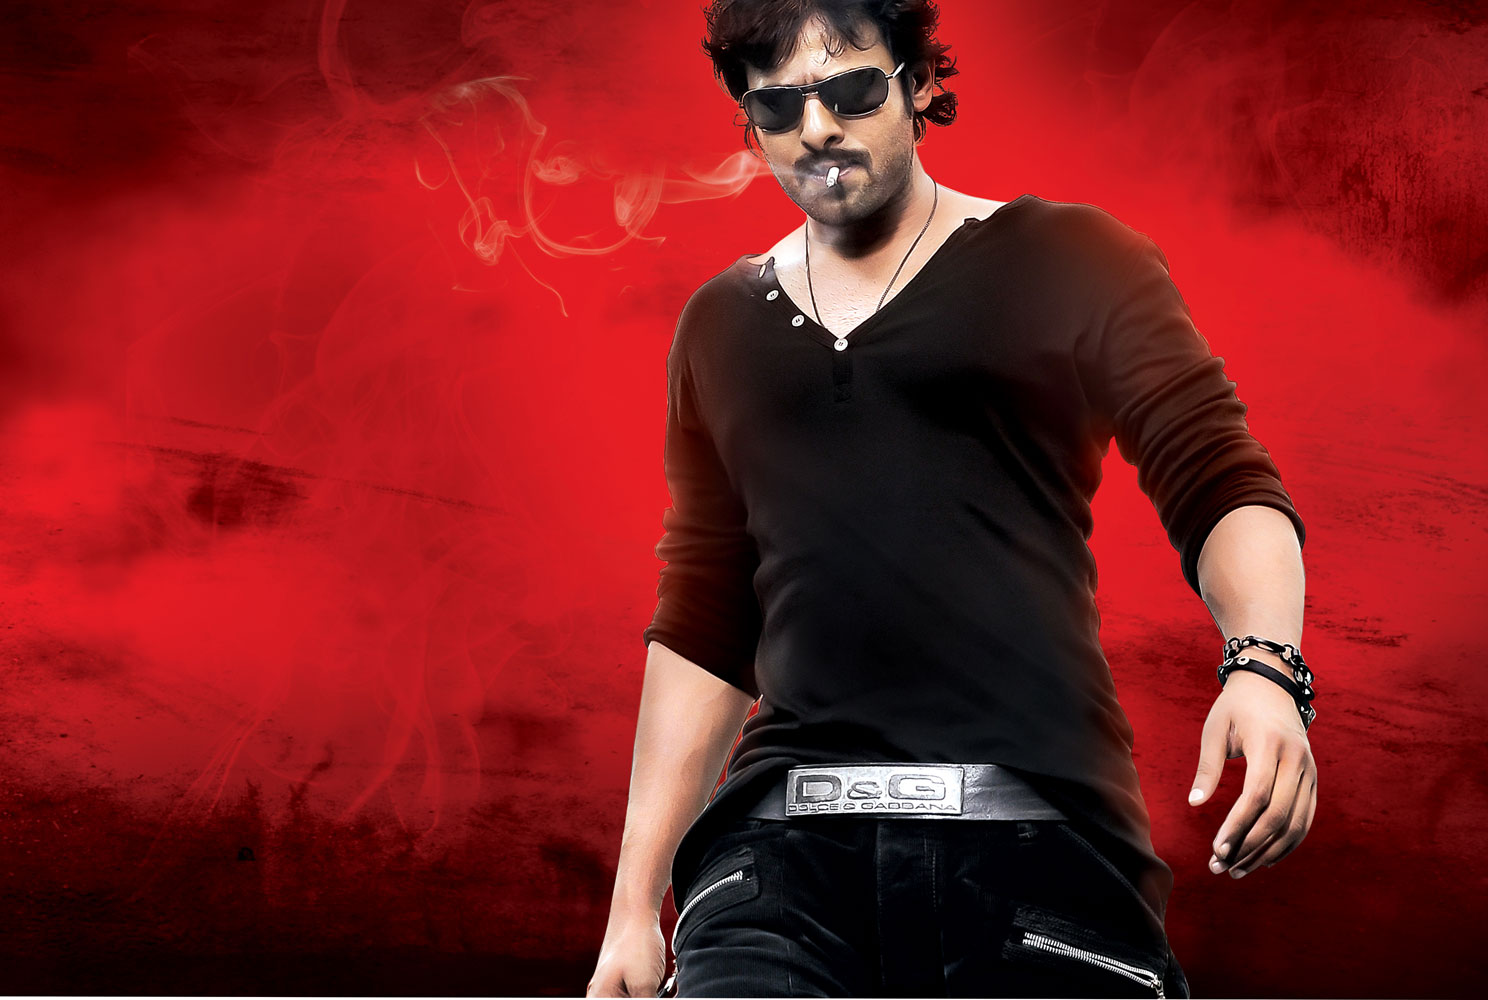 Rebel Movie New Stills: Tollywood Tab: Darling Prabhas Rocking Photos In Rebel